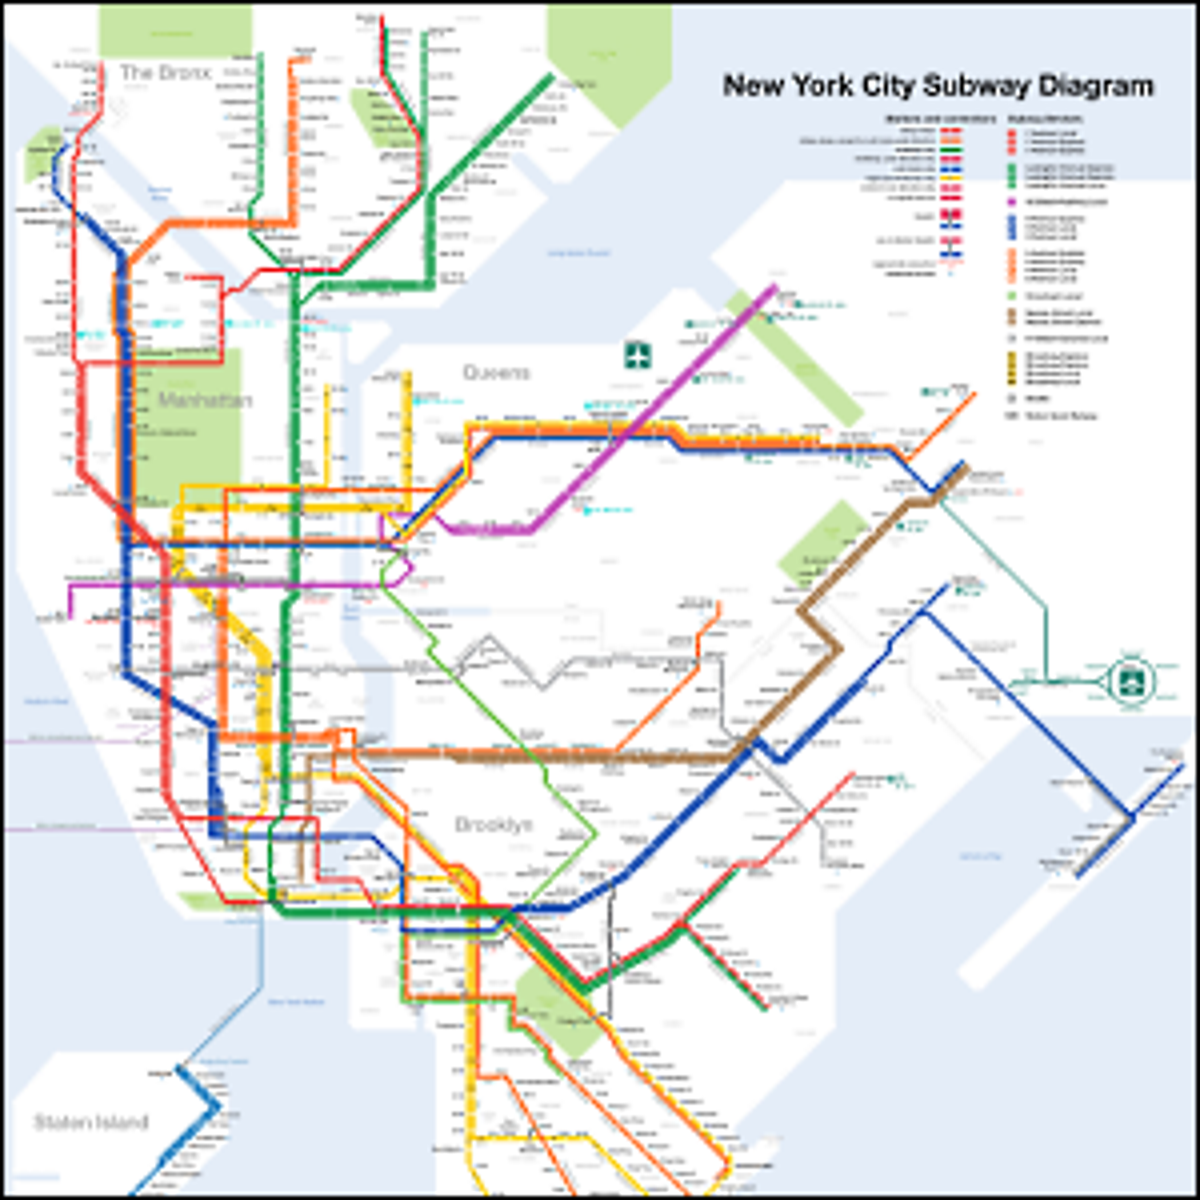 A modern map of the New York City Subway system.